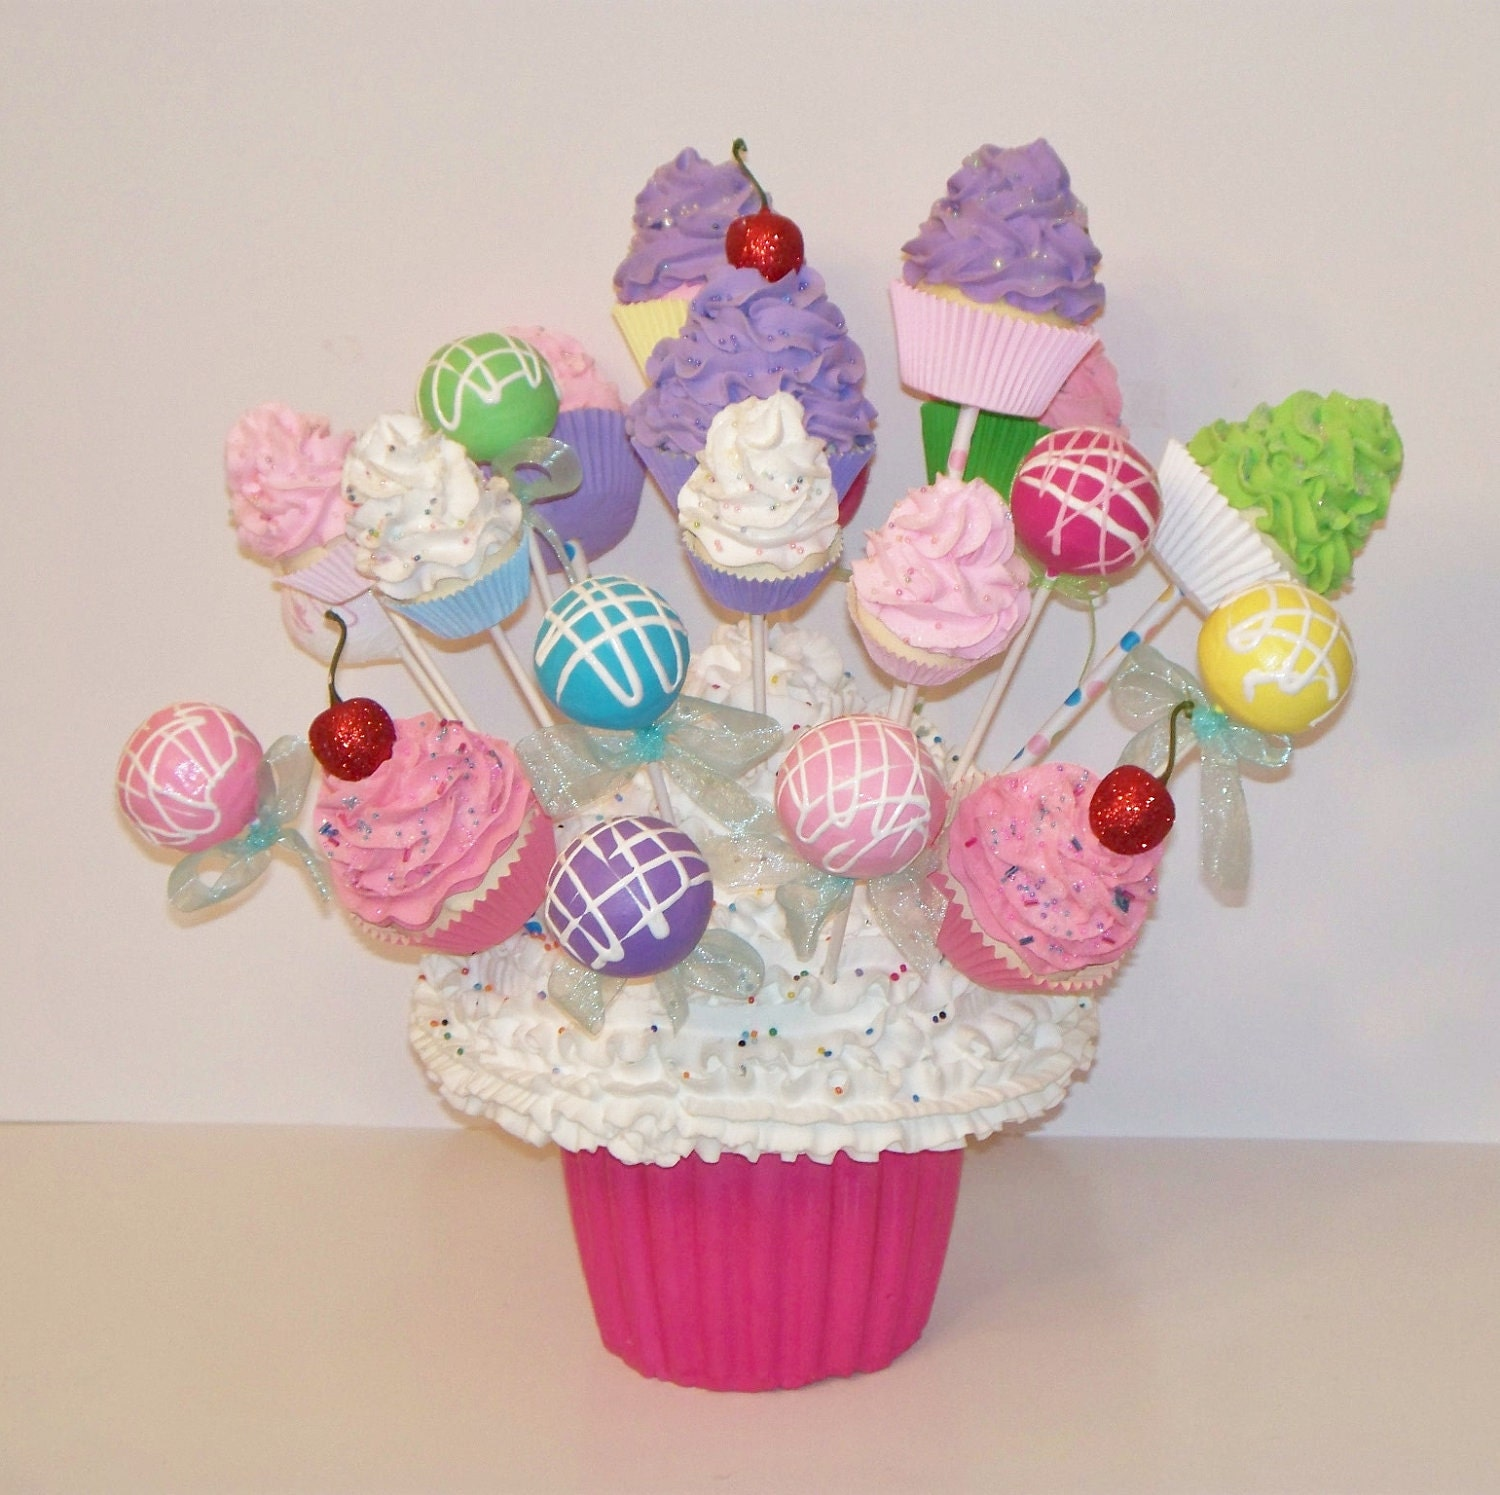 ONE  Fake Cupcake Lollipop Cake Pop Standard Size Choose Colors,Birthday Party Decor, add to Arrangements, Centerpiece, Gifts - FakeCupcakeCreations